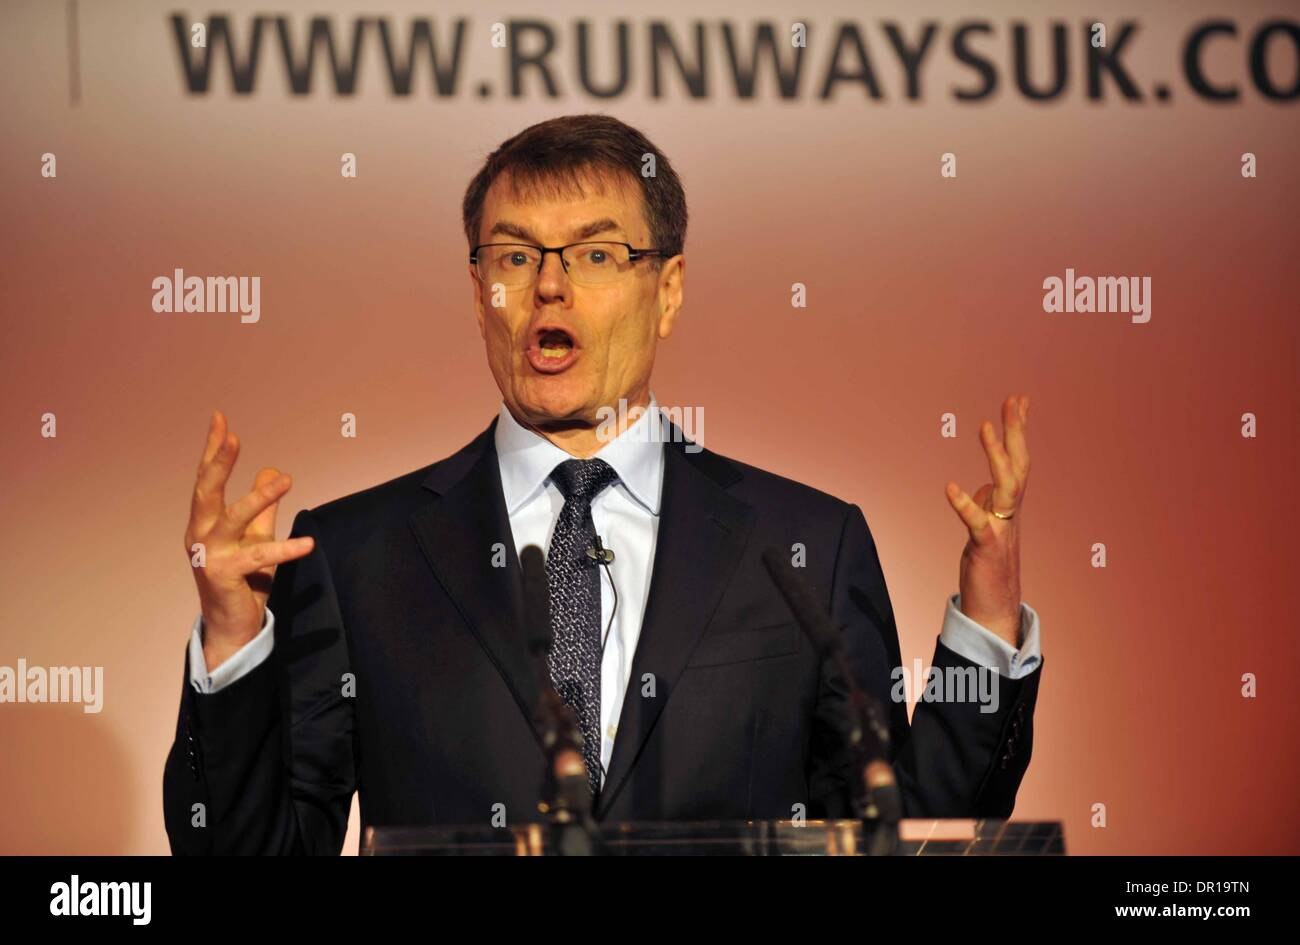 Runways UK conference, London. Britain, UK. Colin Matthews of Heathrow Airport.. - Stock Image